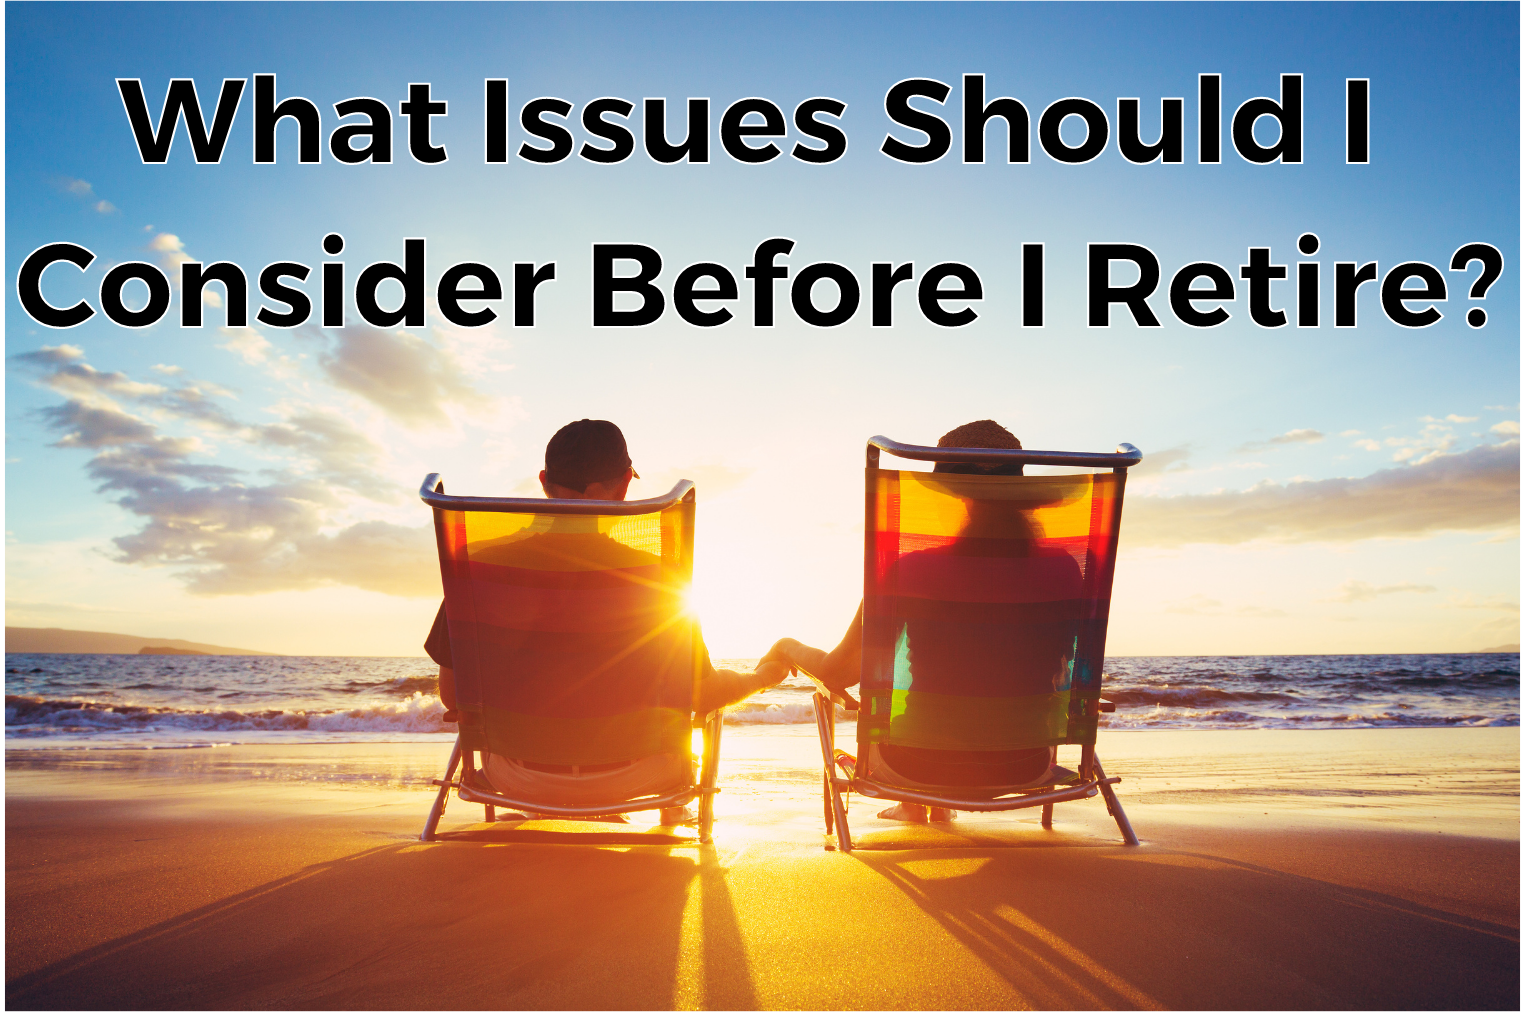 Checklist for Issues to consider before retiring